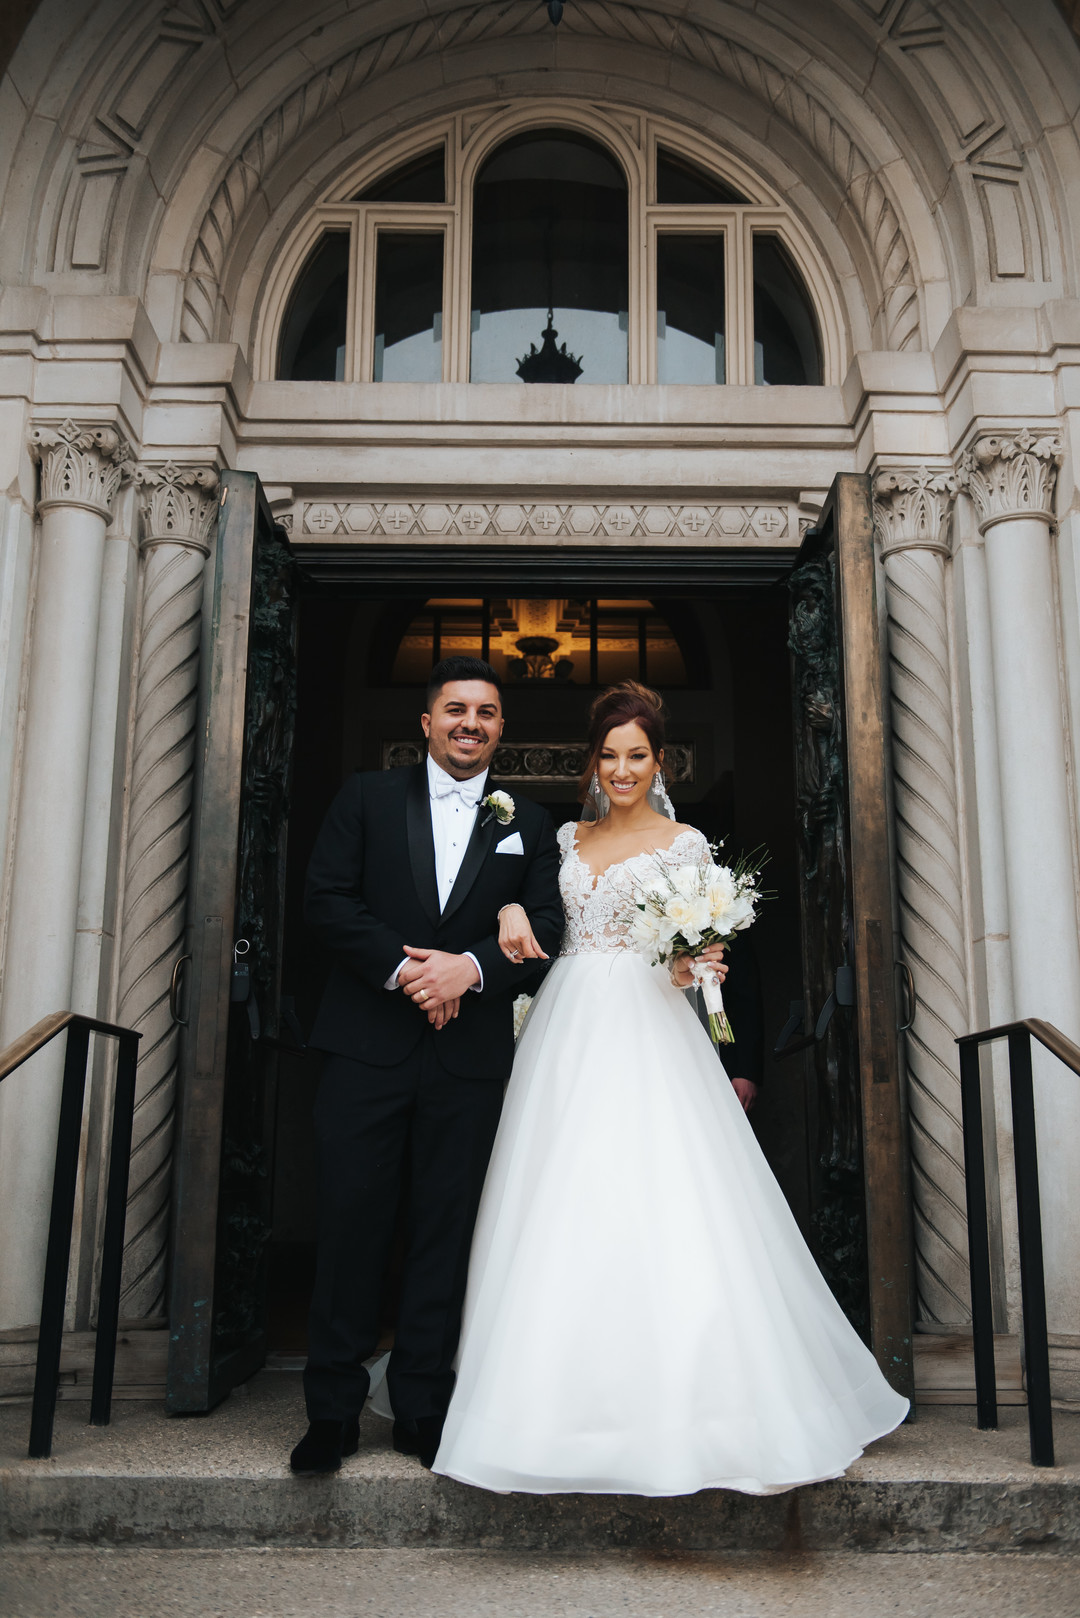 Historic Medinah Country Club wedding captured by Windy City Production. For more Chicago wedding ideas, visit CHItheeWED.com!